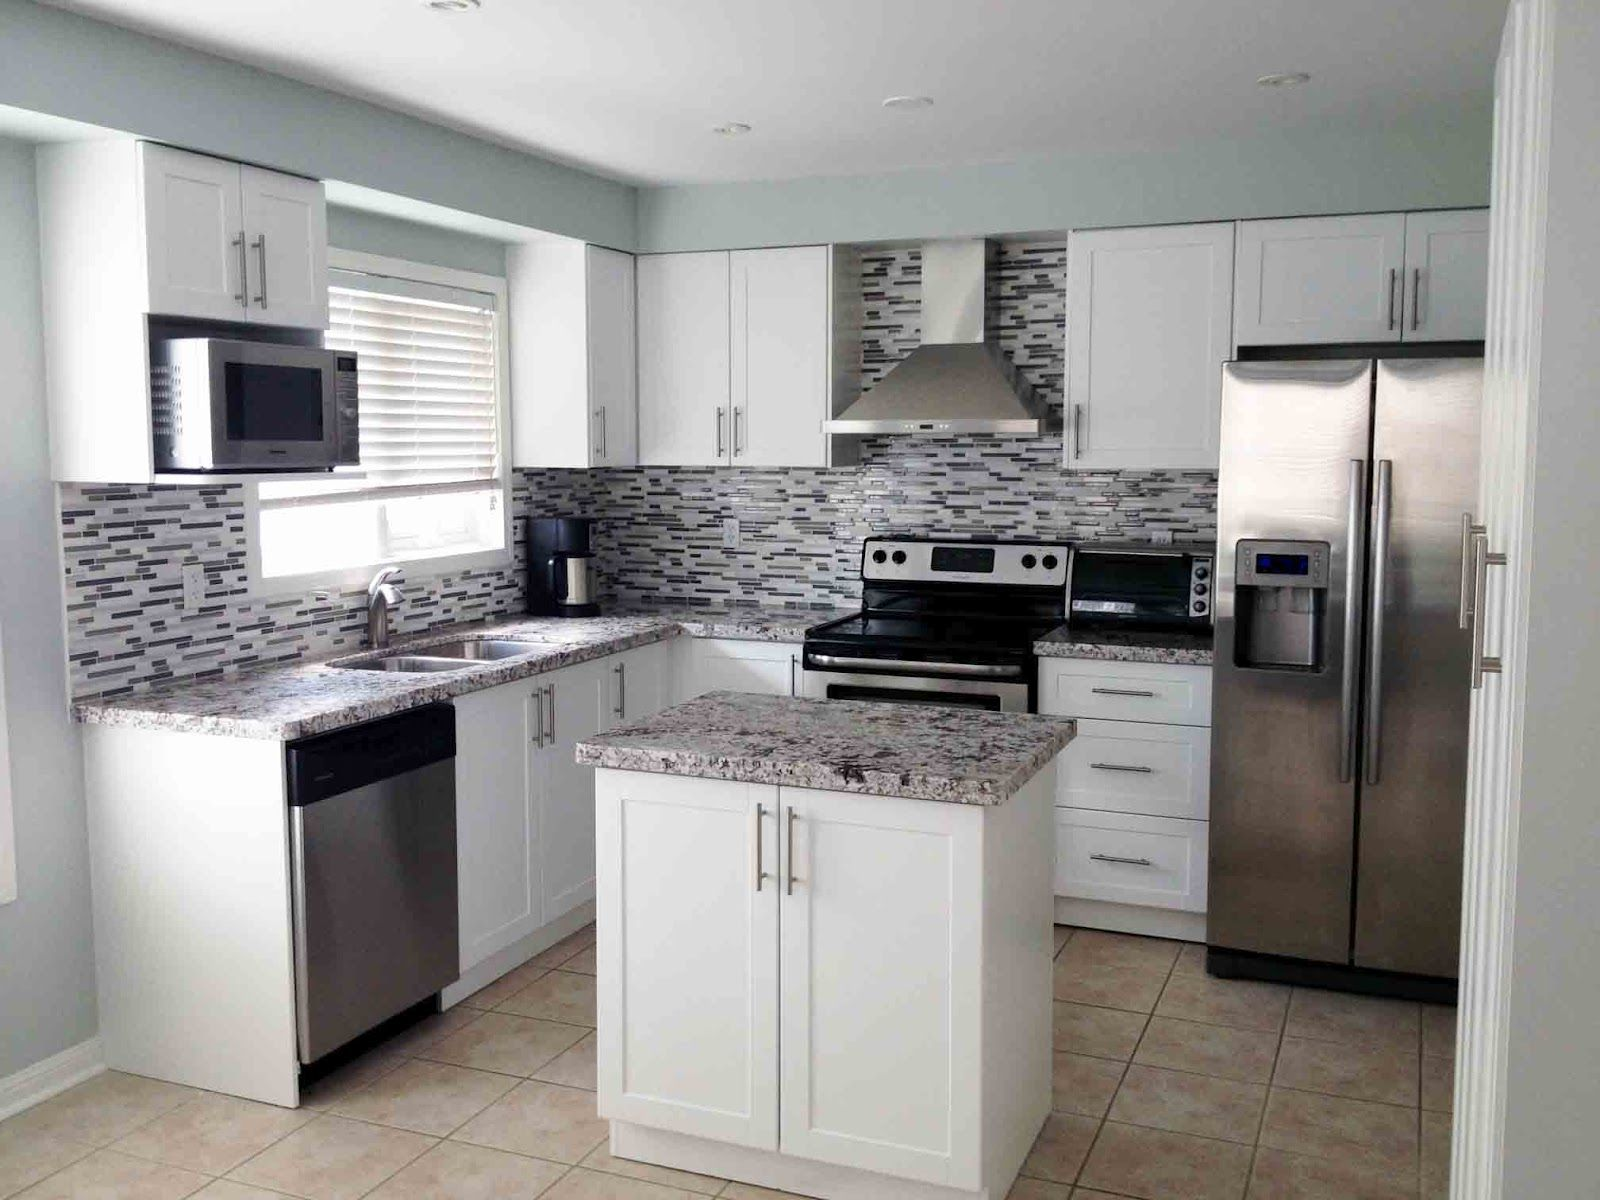 kitchen remodel banquet | Kitchen Cabinets White Shaker Style ...